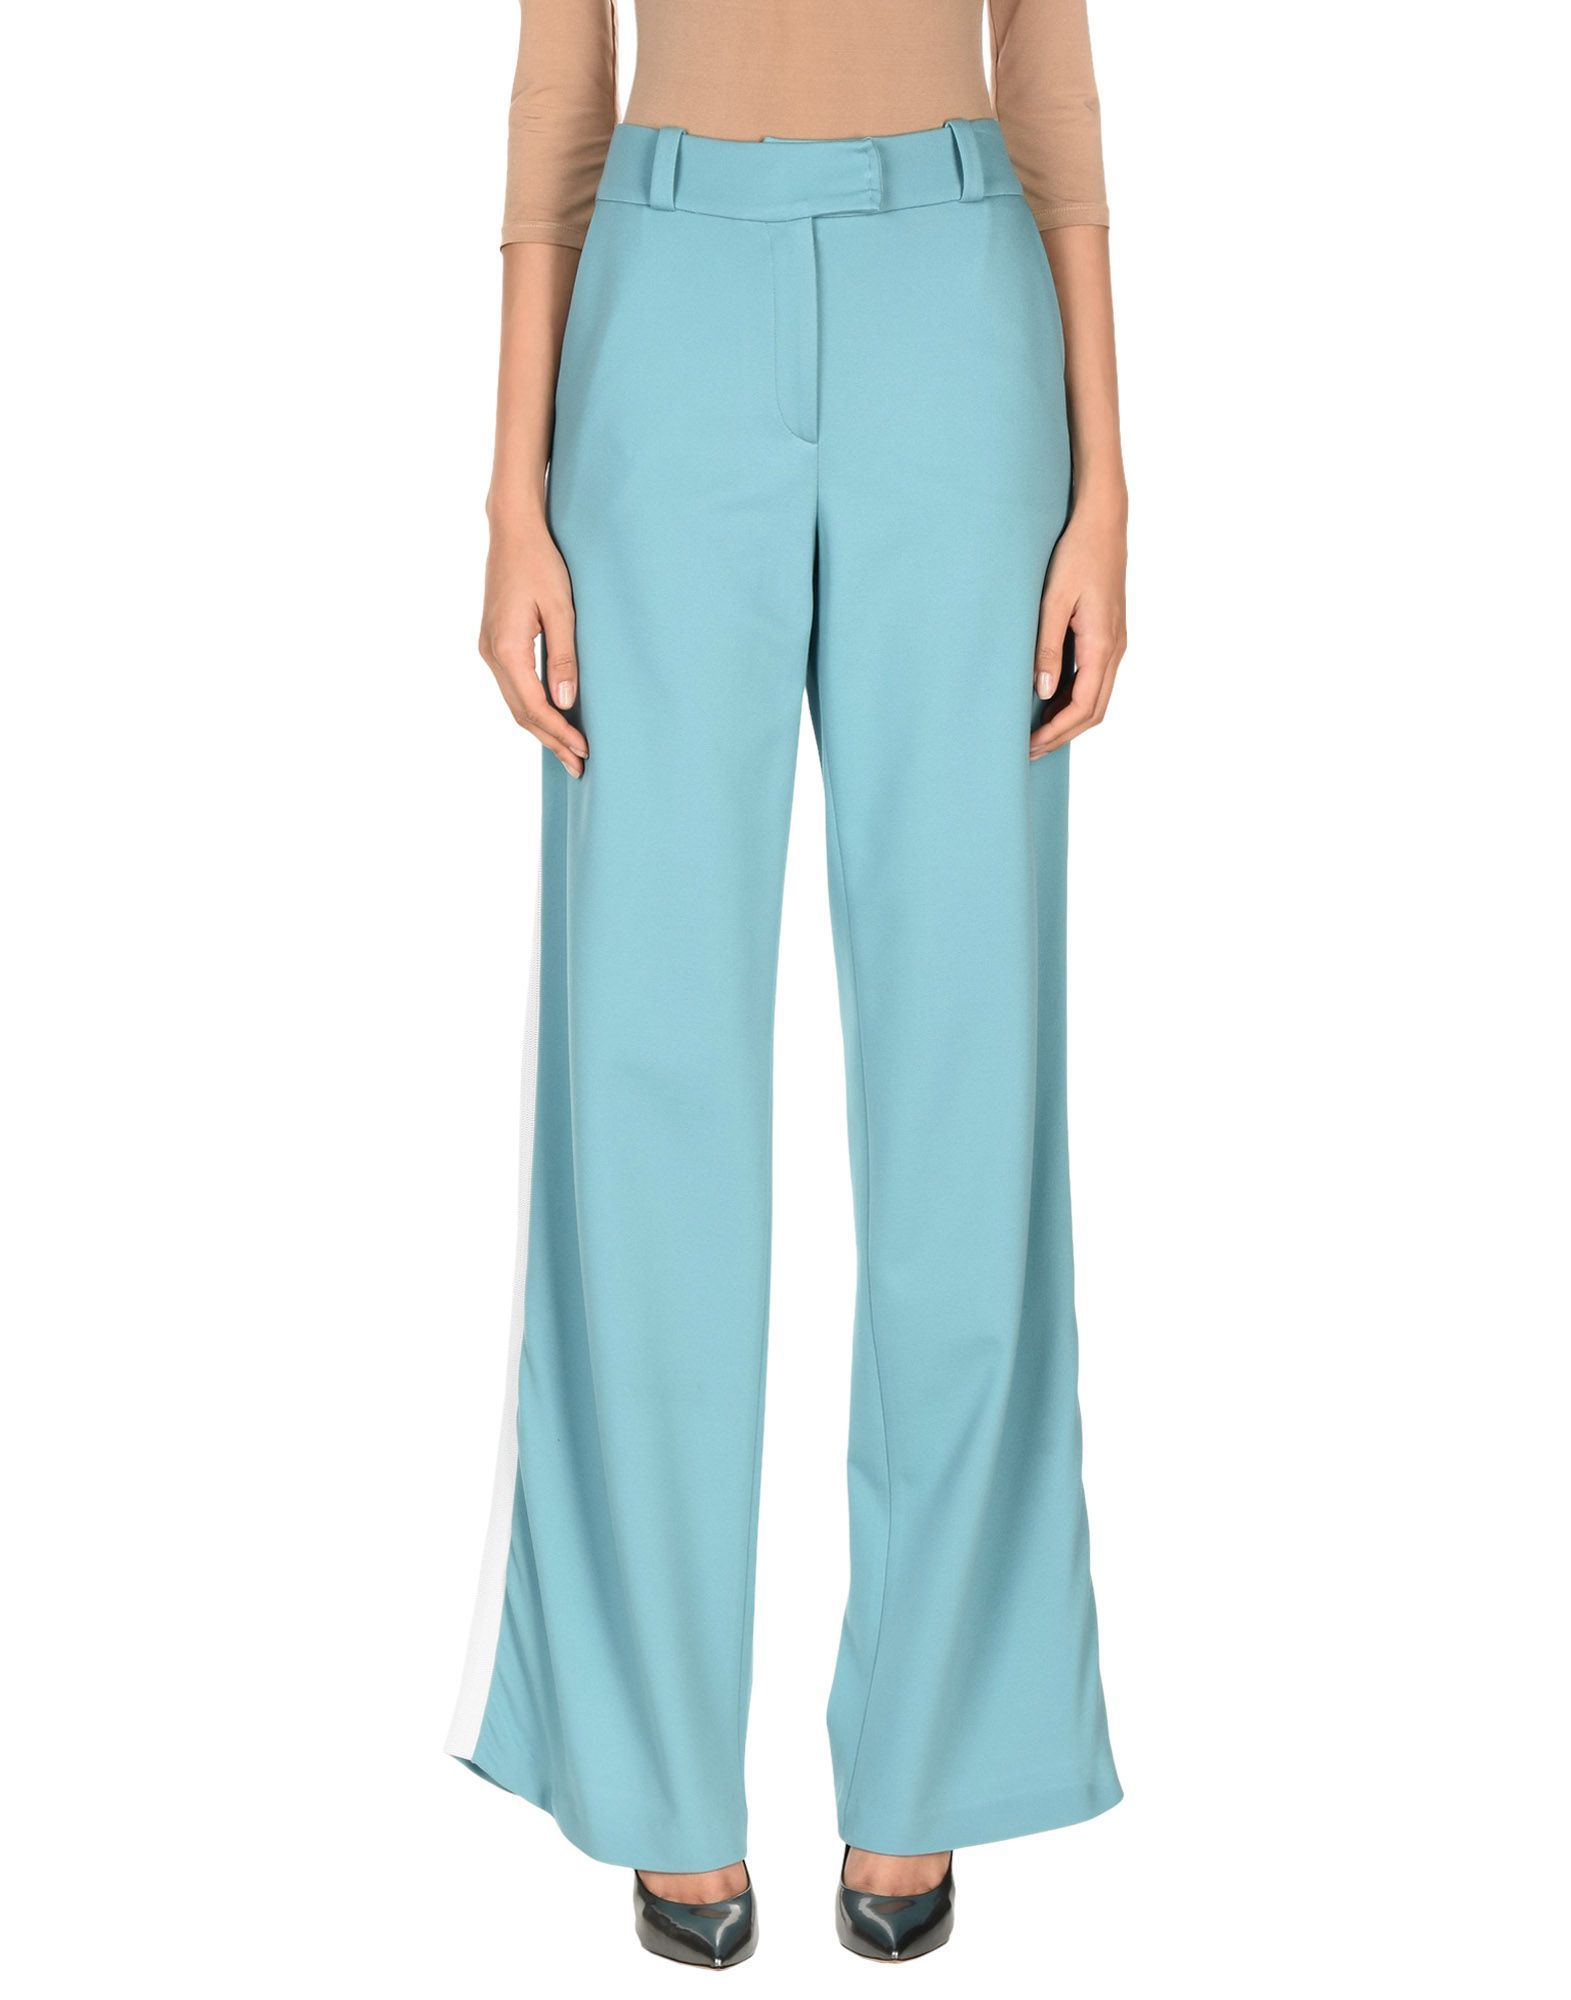 TROUSERS Maison Ullens Turquoise Woman Viscose